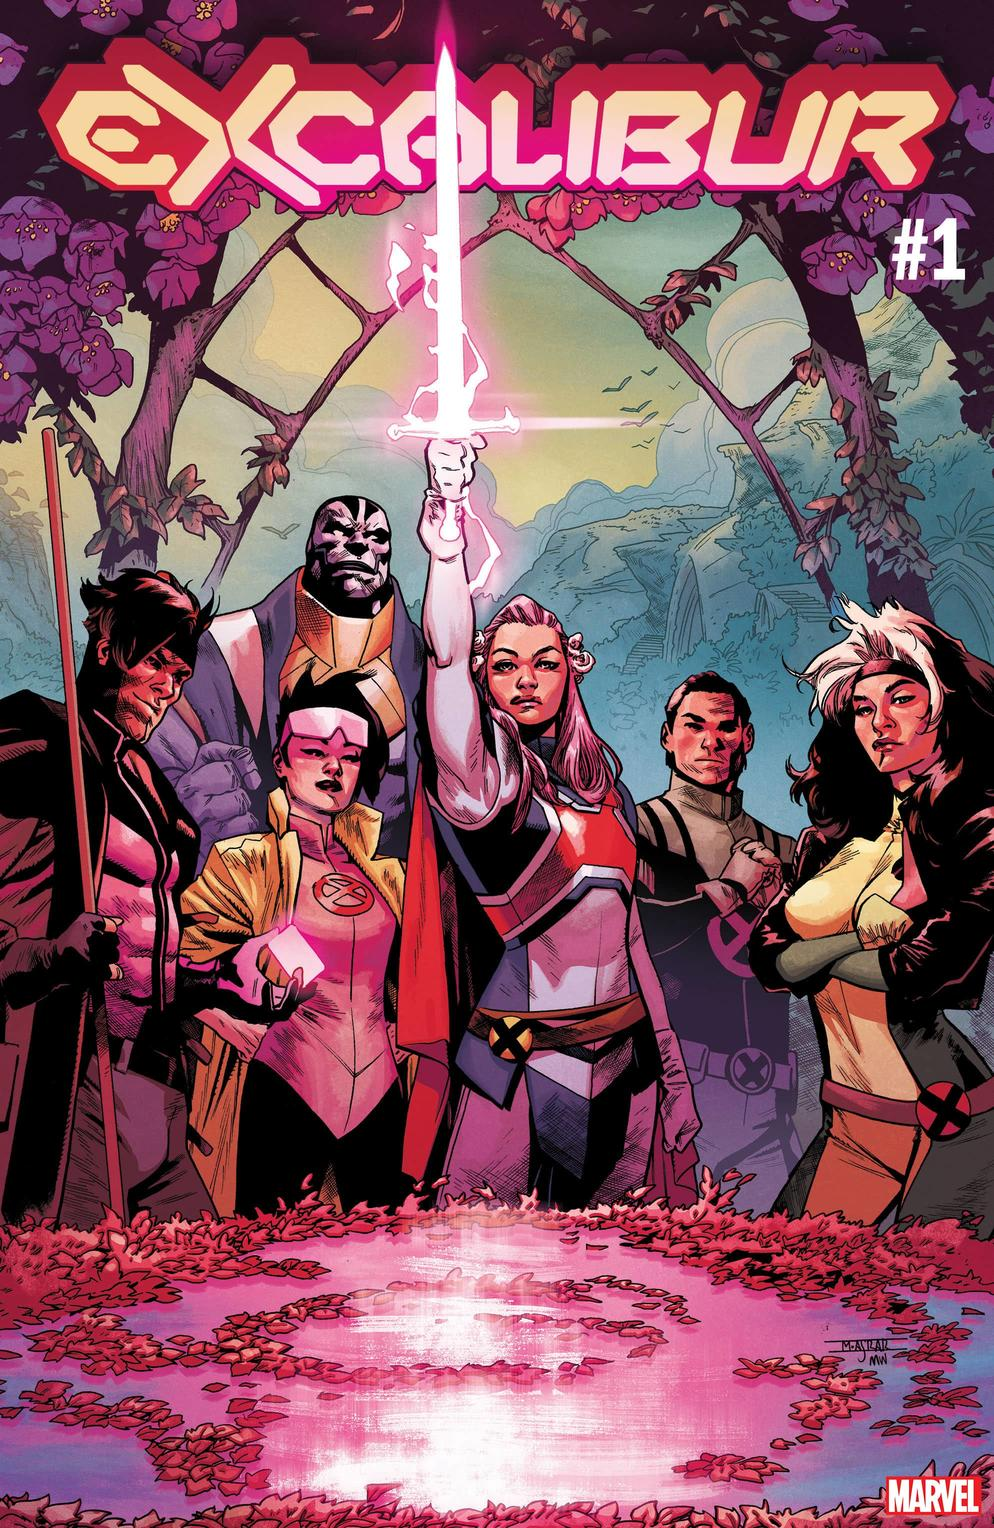 Marvel Comics na SDCC 2019 - X-Men - Excalibur #1 - Blog Farofeiros